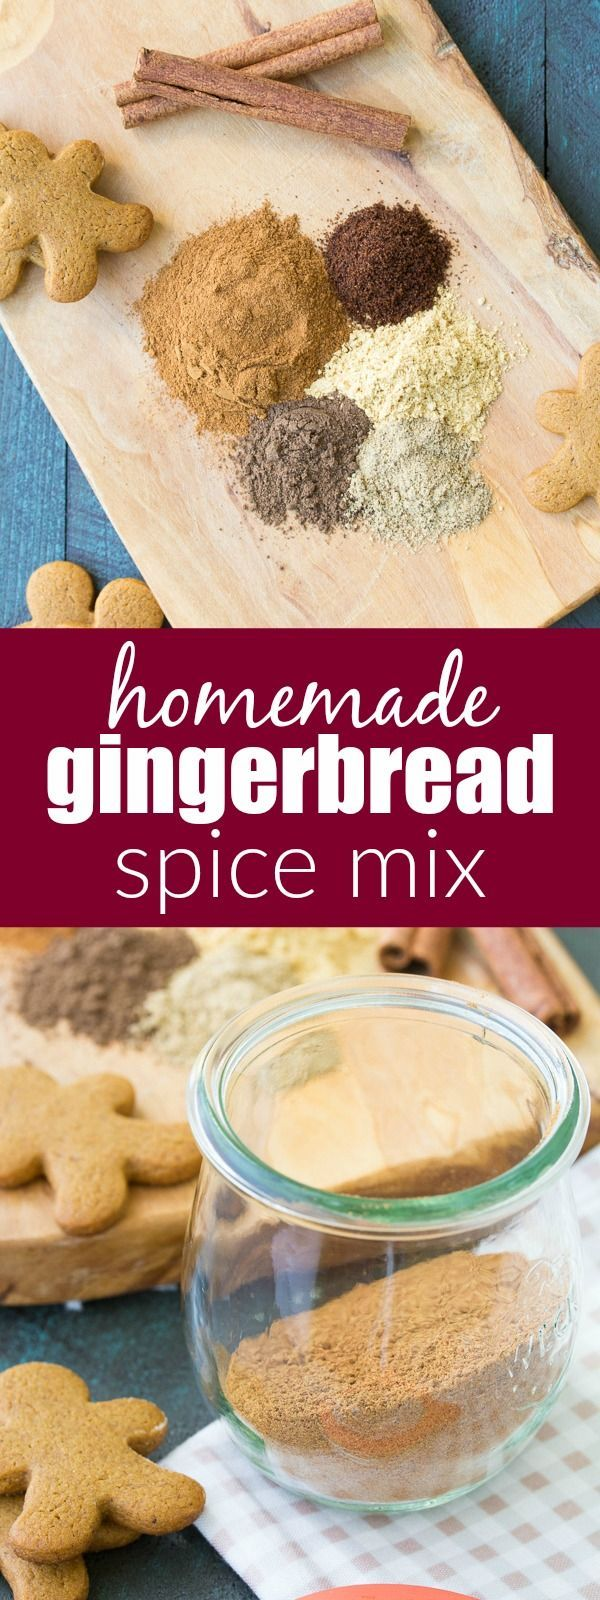 Add this homemade gingerbread spice mix to pancakes, waffles, breads, coffee, cookies and more! This recipe is easy to make with just a few ingredients. One of our favorite recipes for Christmas and holiday baking! | http://www.kristineskitchenblog.com